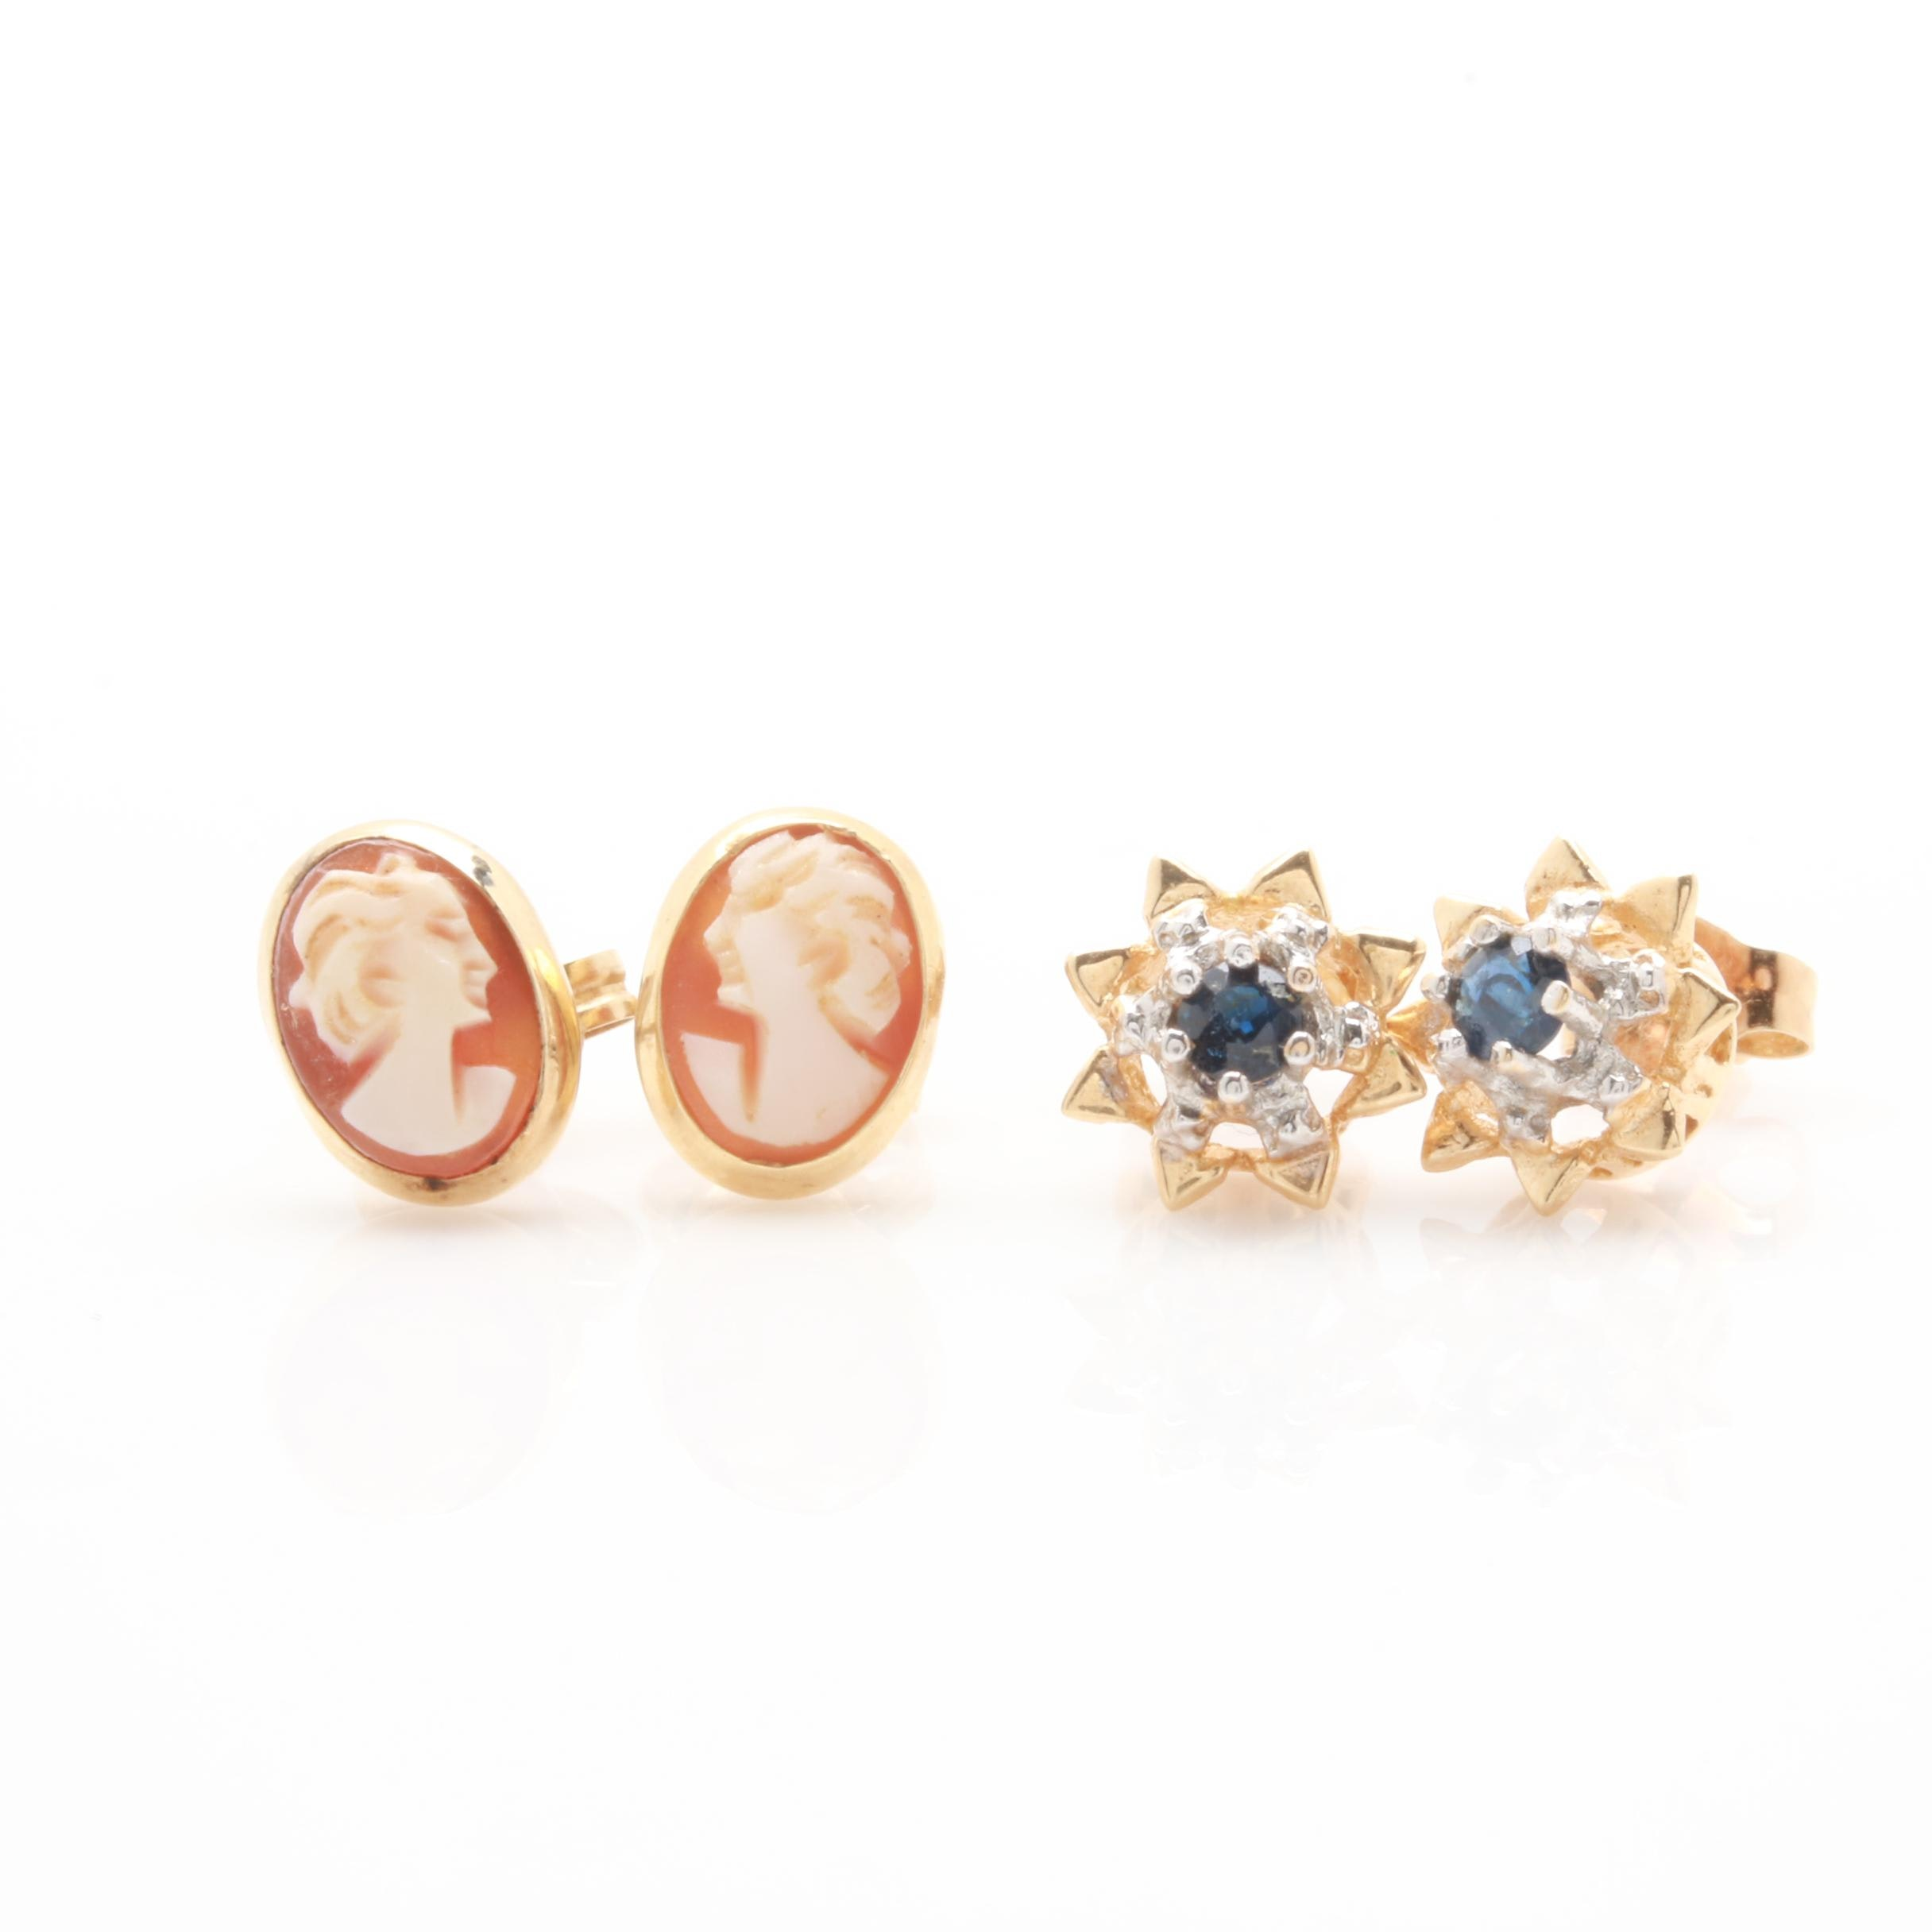 14K Yellow Gold Earring Assortment Including Shell Cameos and Blue Sapphires